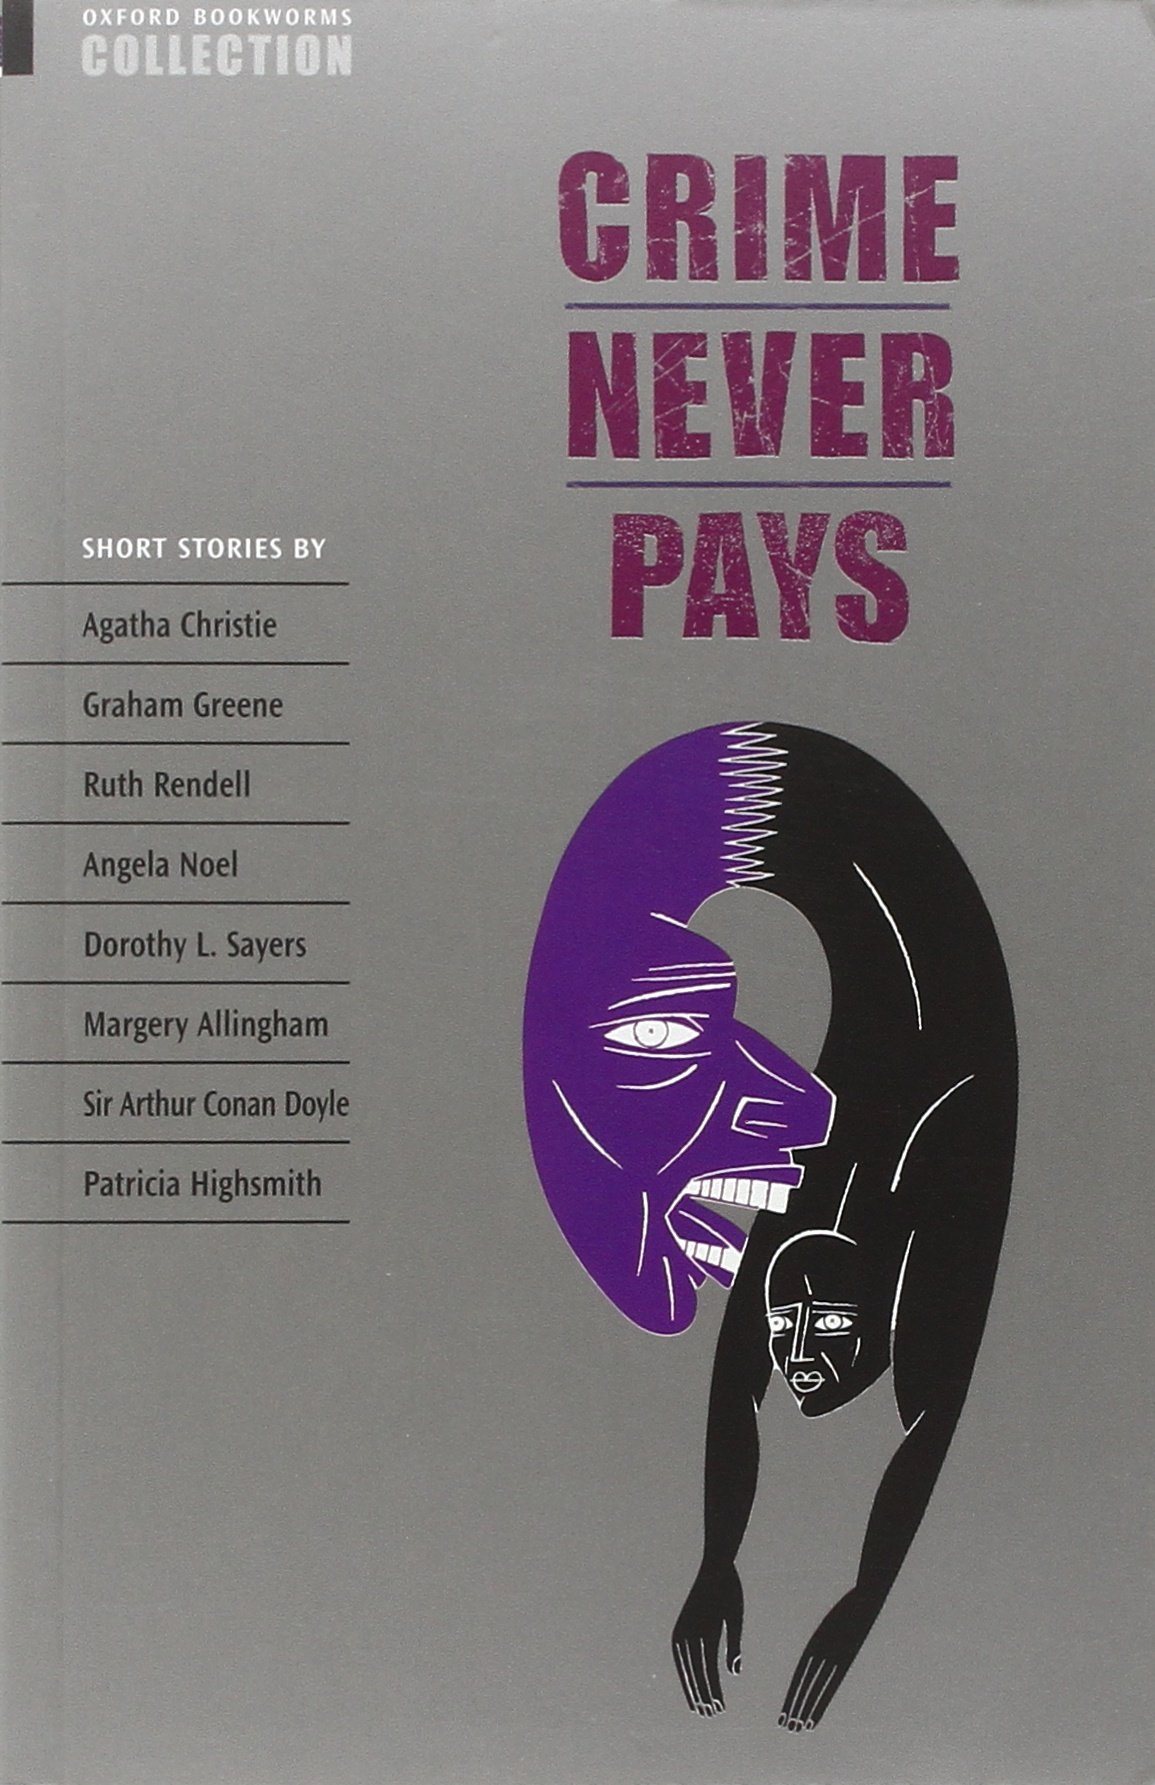 Oxford Bookworms Collection. Crime Never Pays (Inglés) Tapa blanda – 1 jul 1993 Clare West S.A. 019422693X English as a Second Language